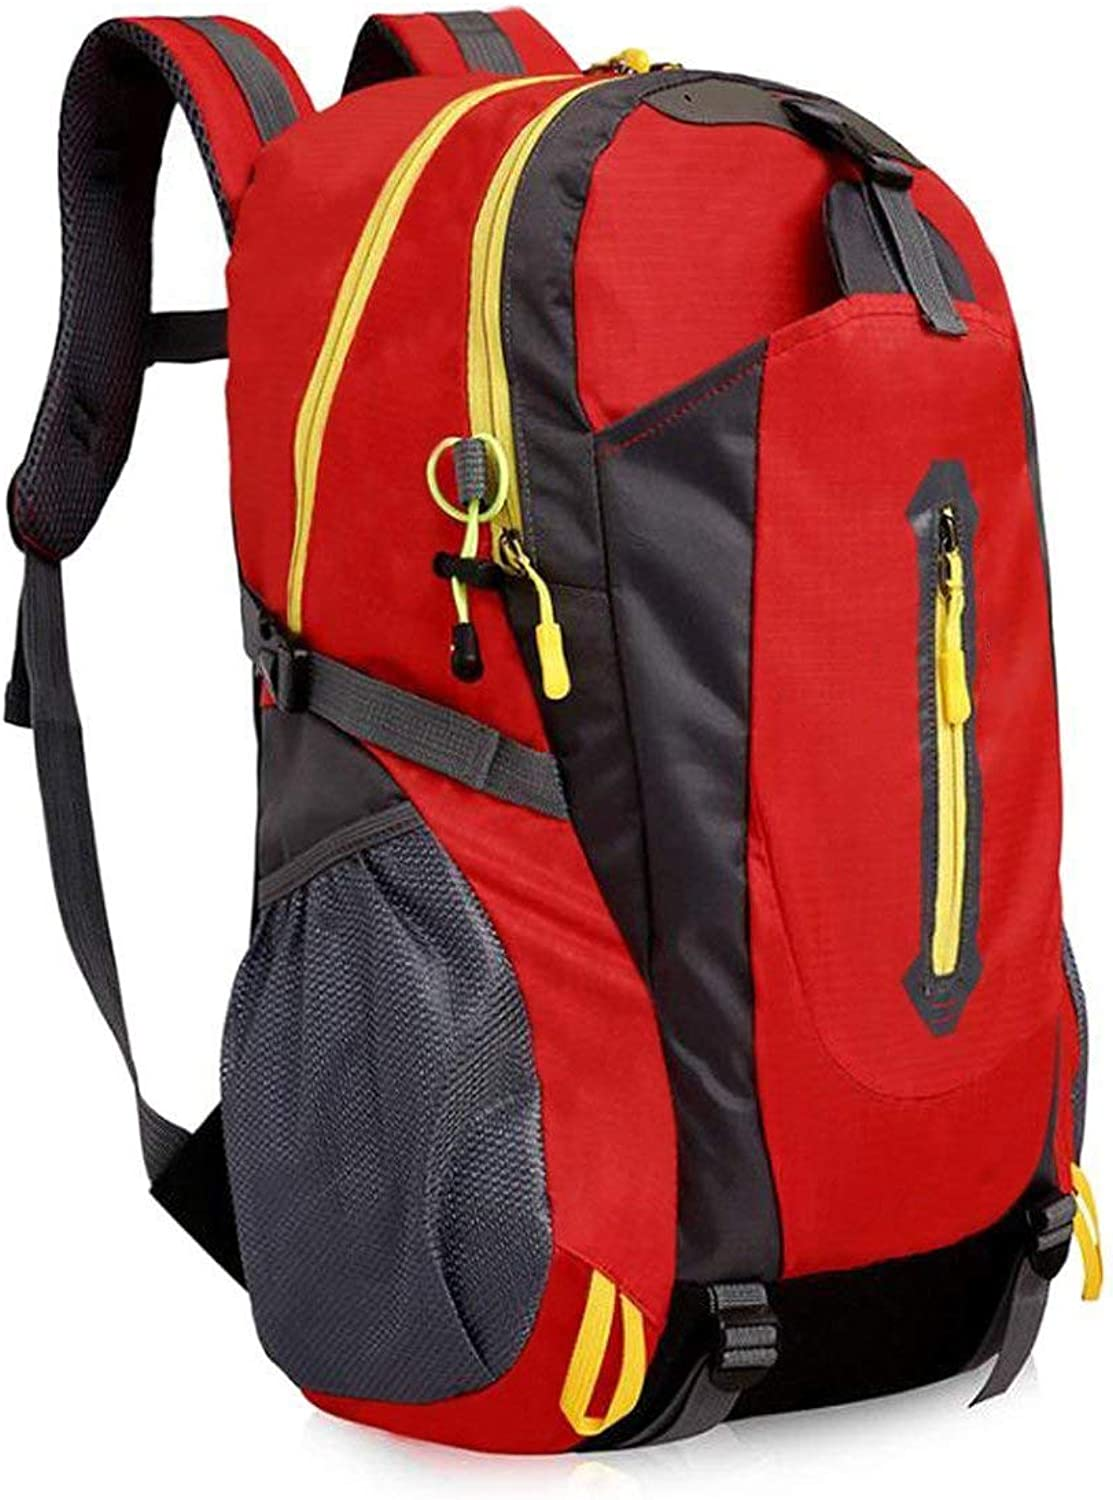 FULONG 40L Lightweight Hiking Backpack, MultiFunctional Waterproof Casual Camping Daypack for Outdoor Sport Climbing Mountaineer